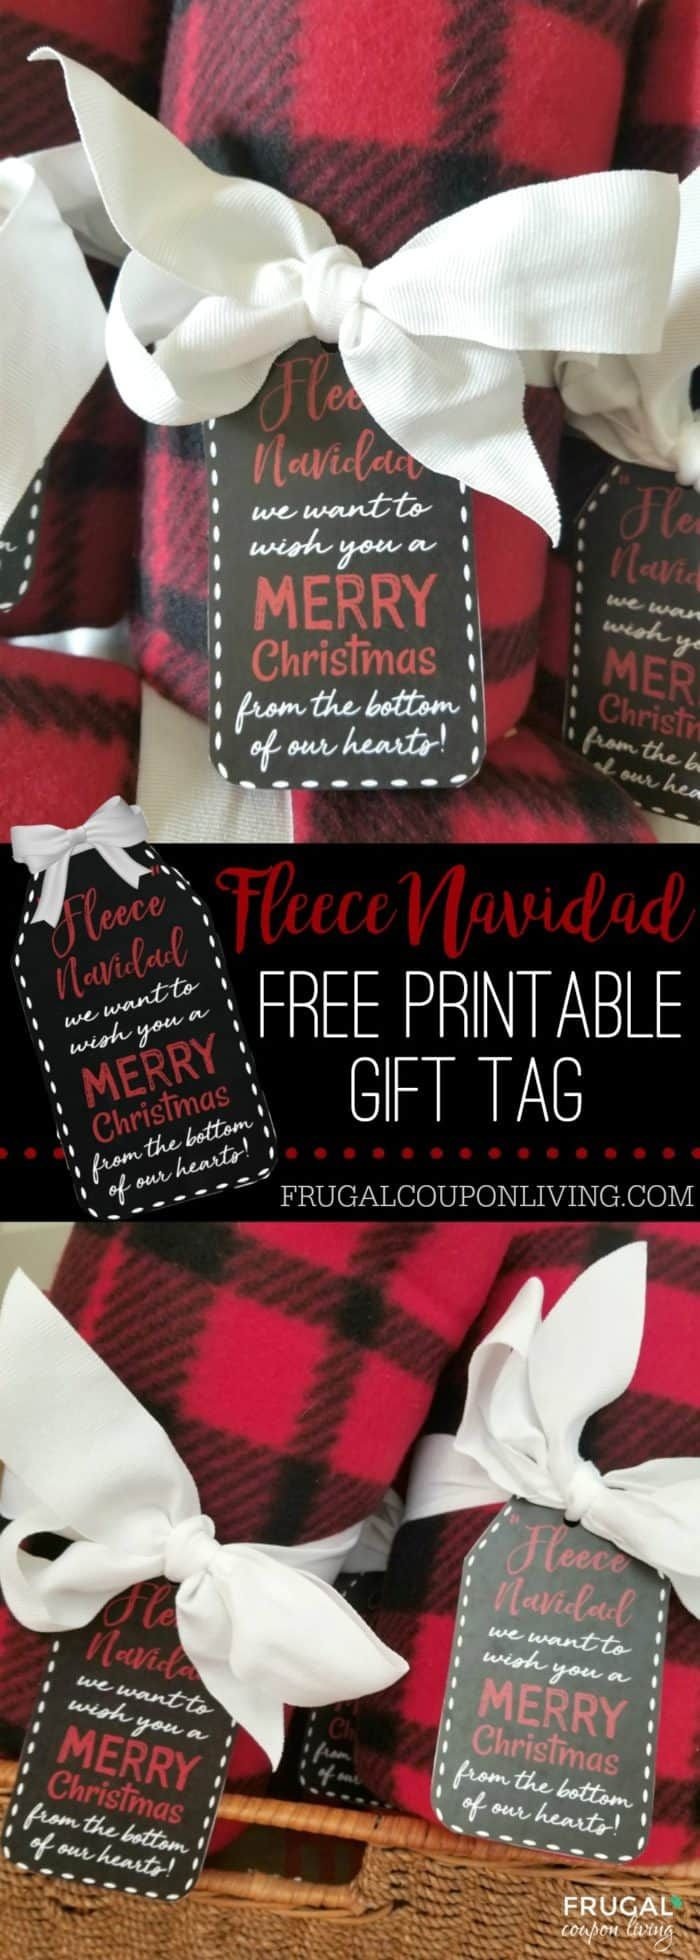 Printable Fleece Navidad Gift Tag - Christmas Teacher Gift Idea